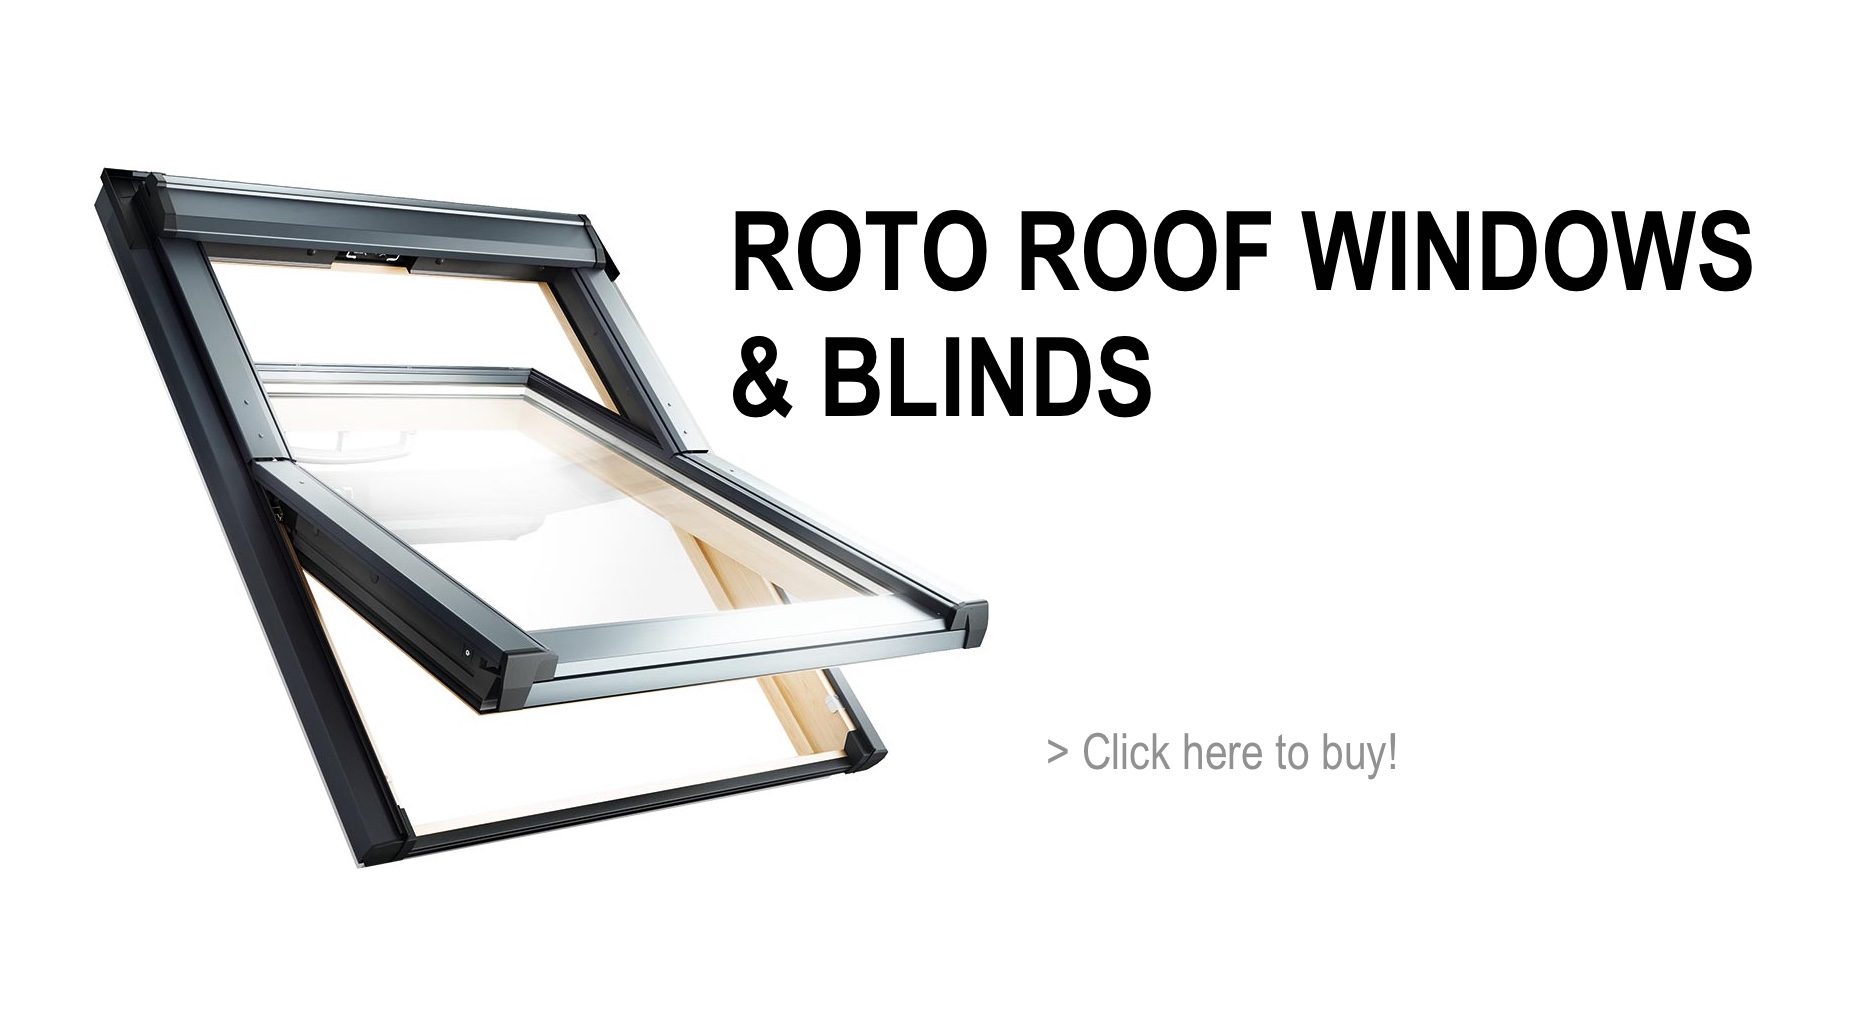 09 Roto Roof Windows & Blinds